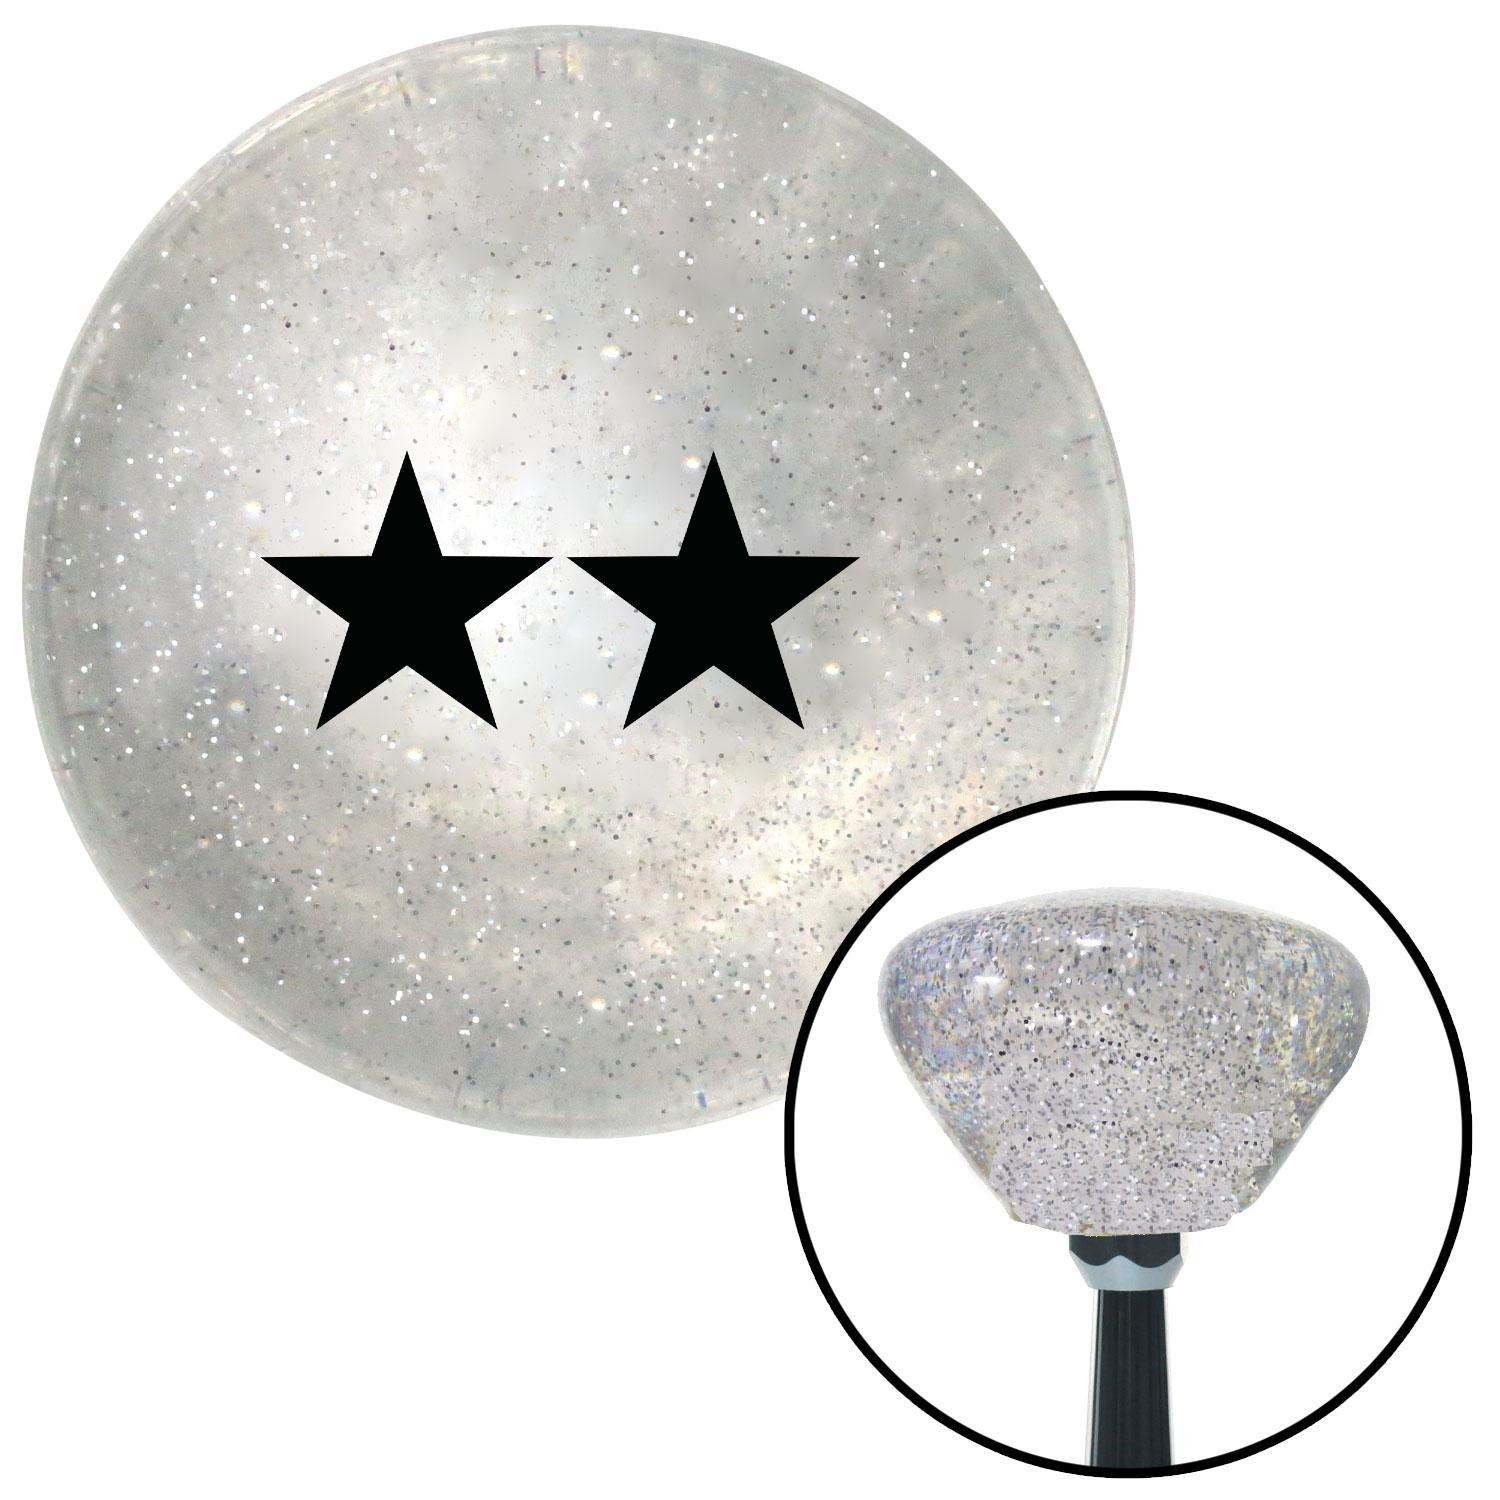 American Shifter 165602 Clear Retro Metal Flake Shift Knob with M16 x 1.5 Insert Black Officer 08 - Major General